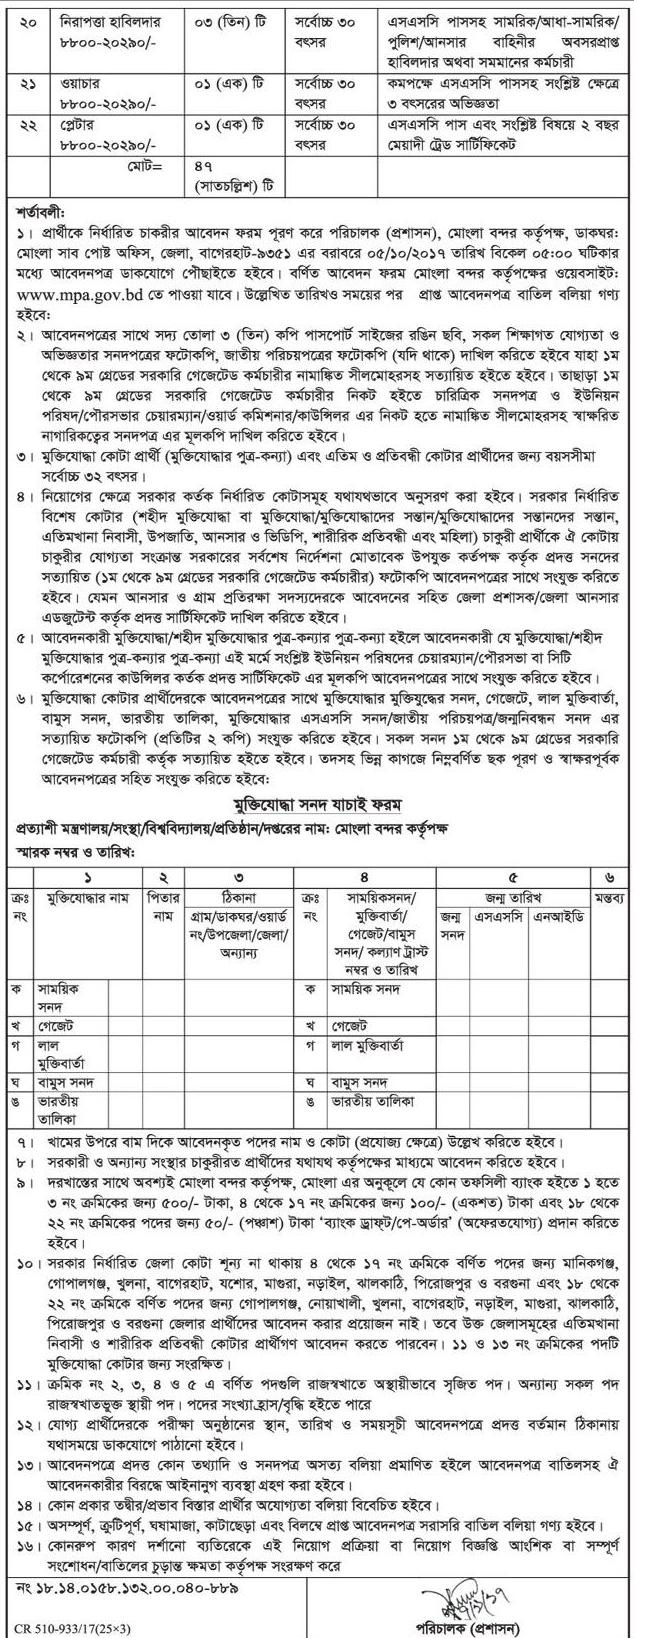 Mongla Port Authority Job Circulars 2017